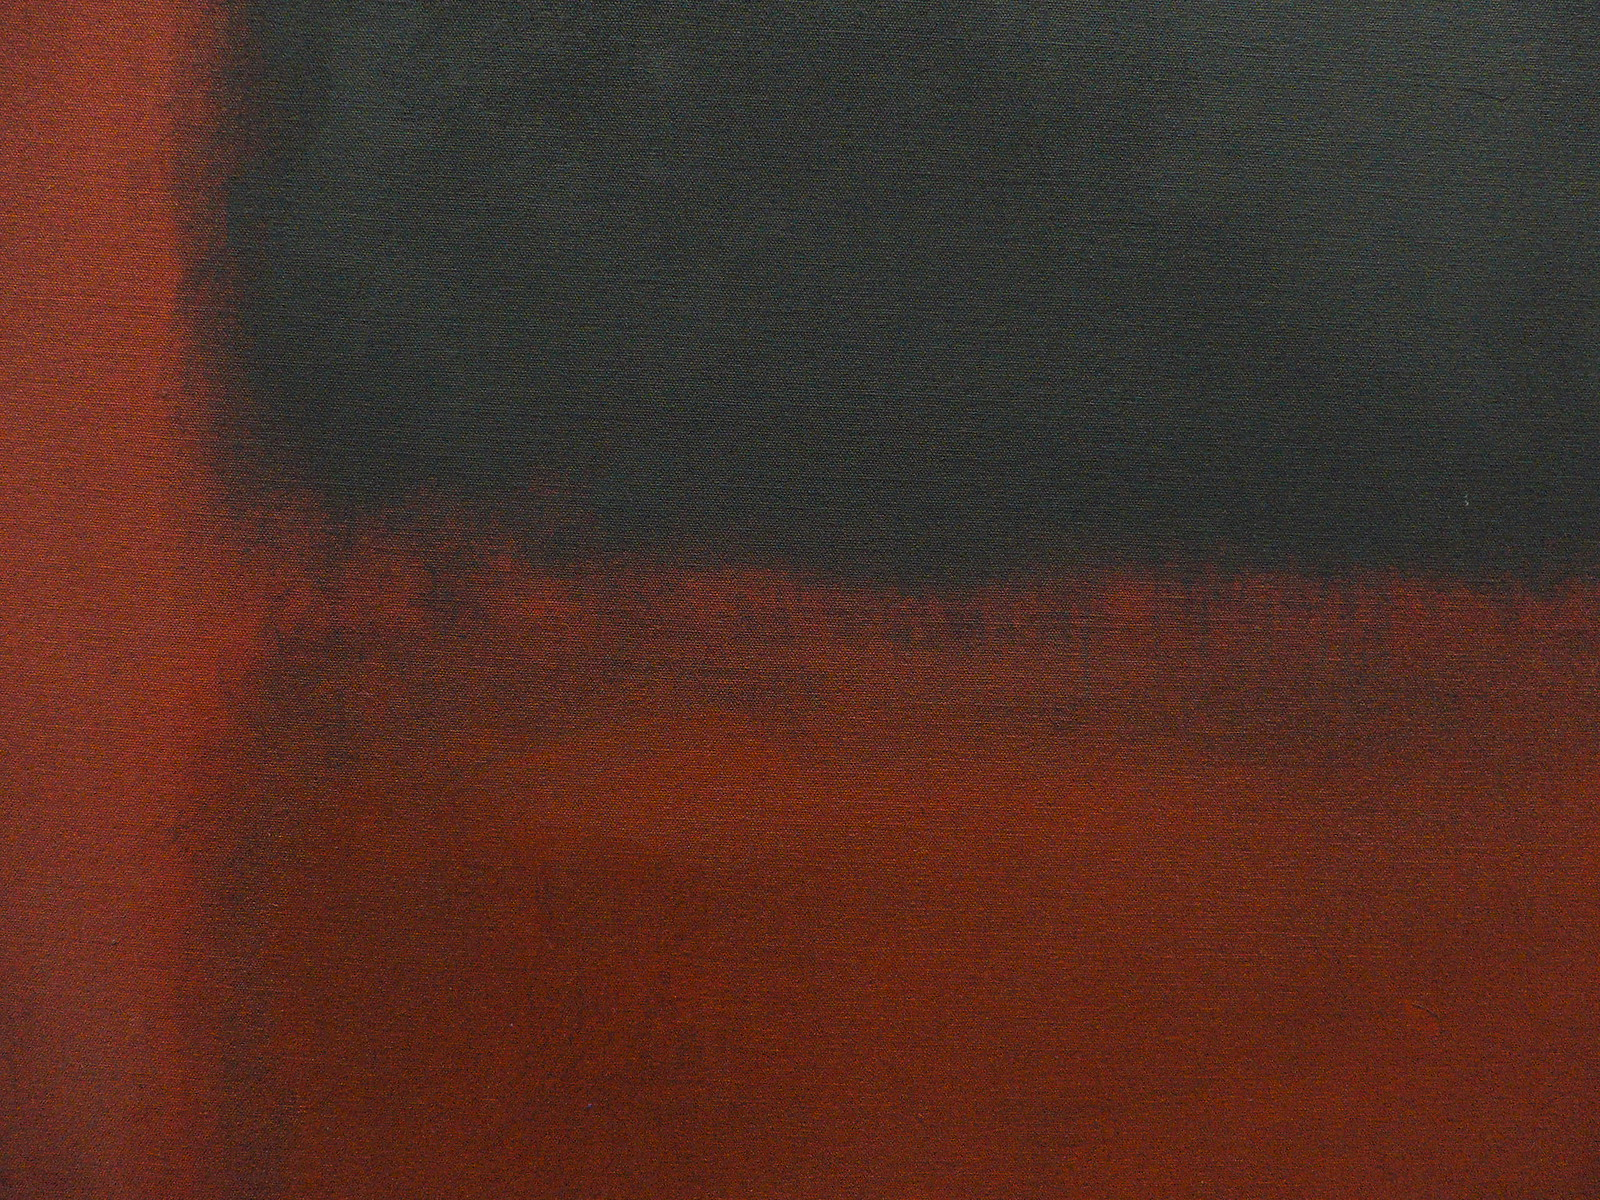 Mark Rothko (1903,Dvinsk - 1970,New York), Untitled [Black, Red over Black on Red], det-1964 | by michellecourteau